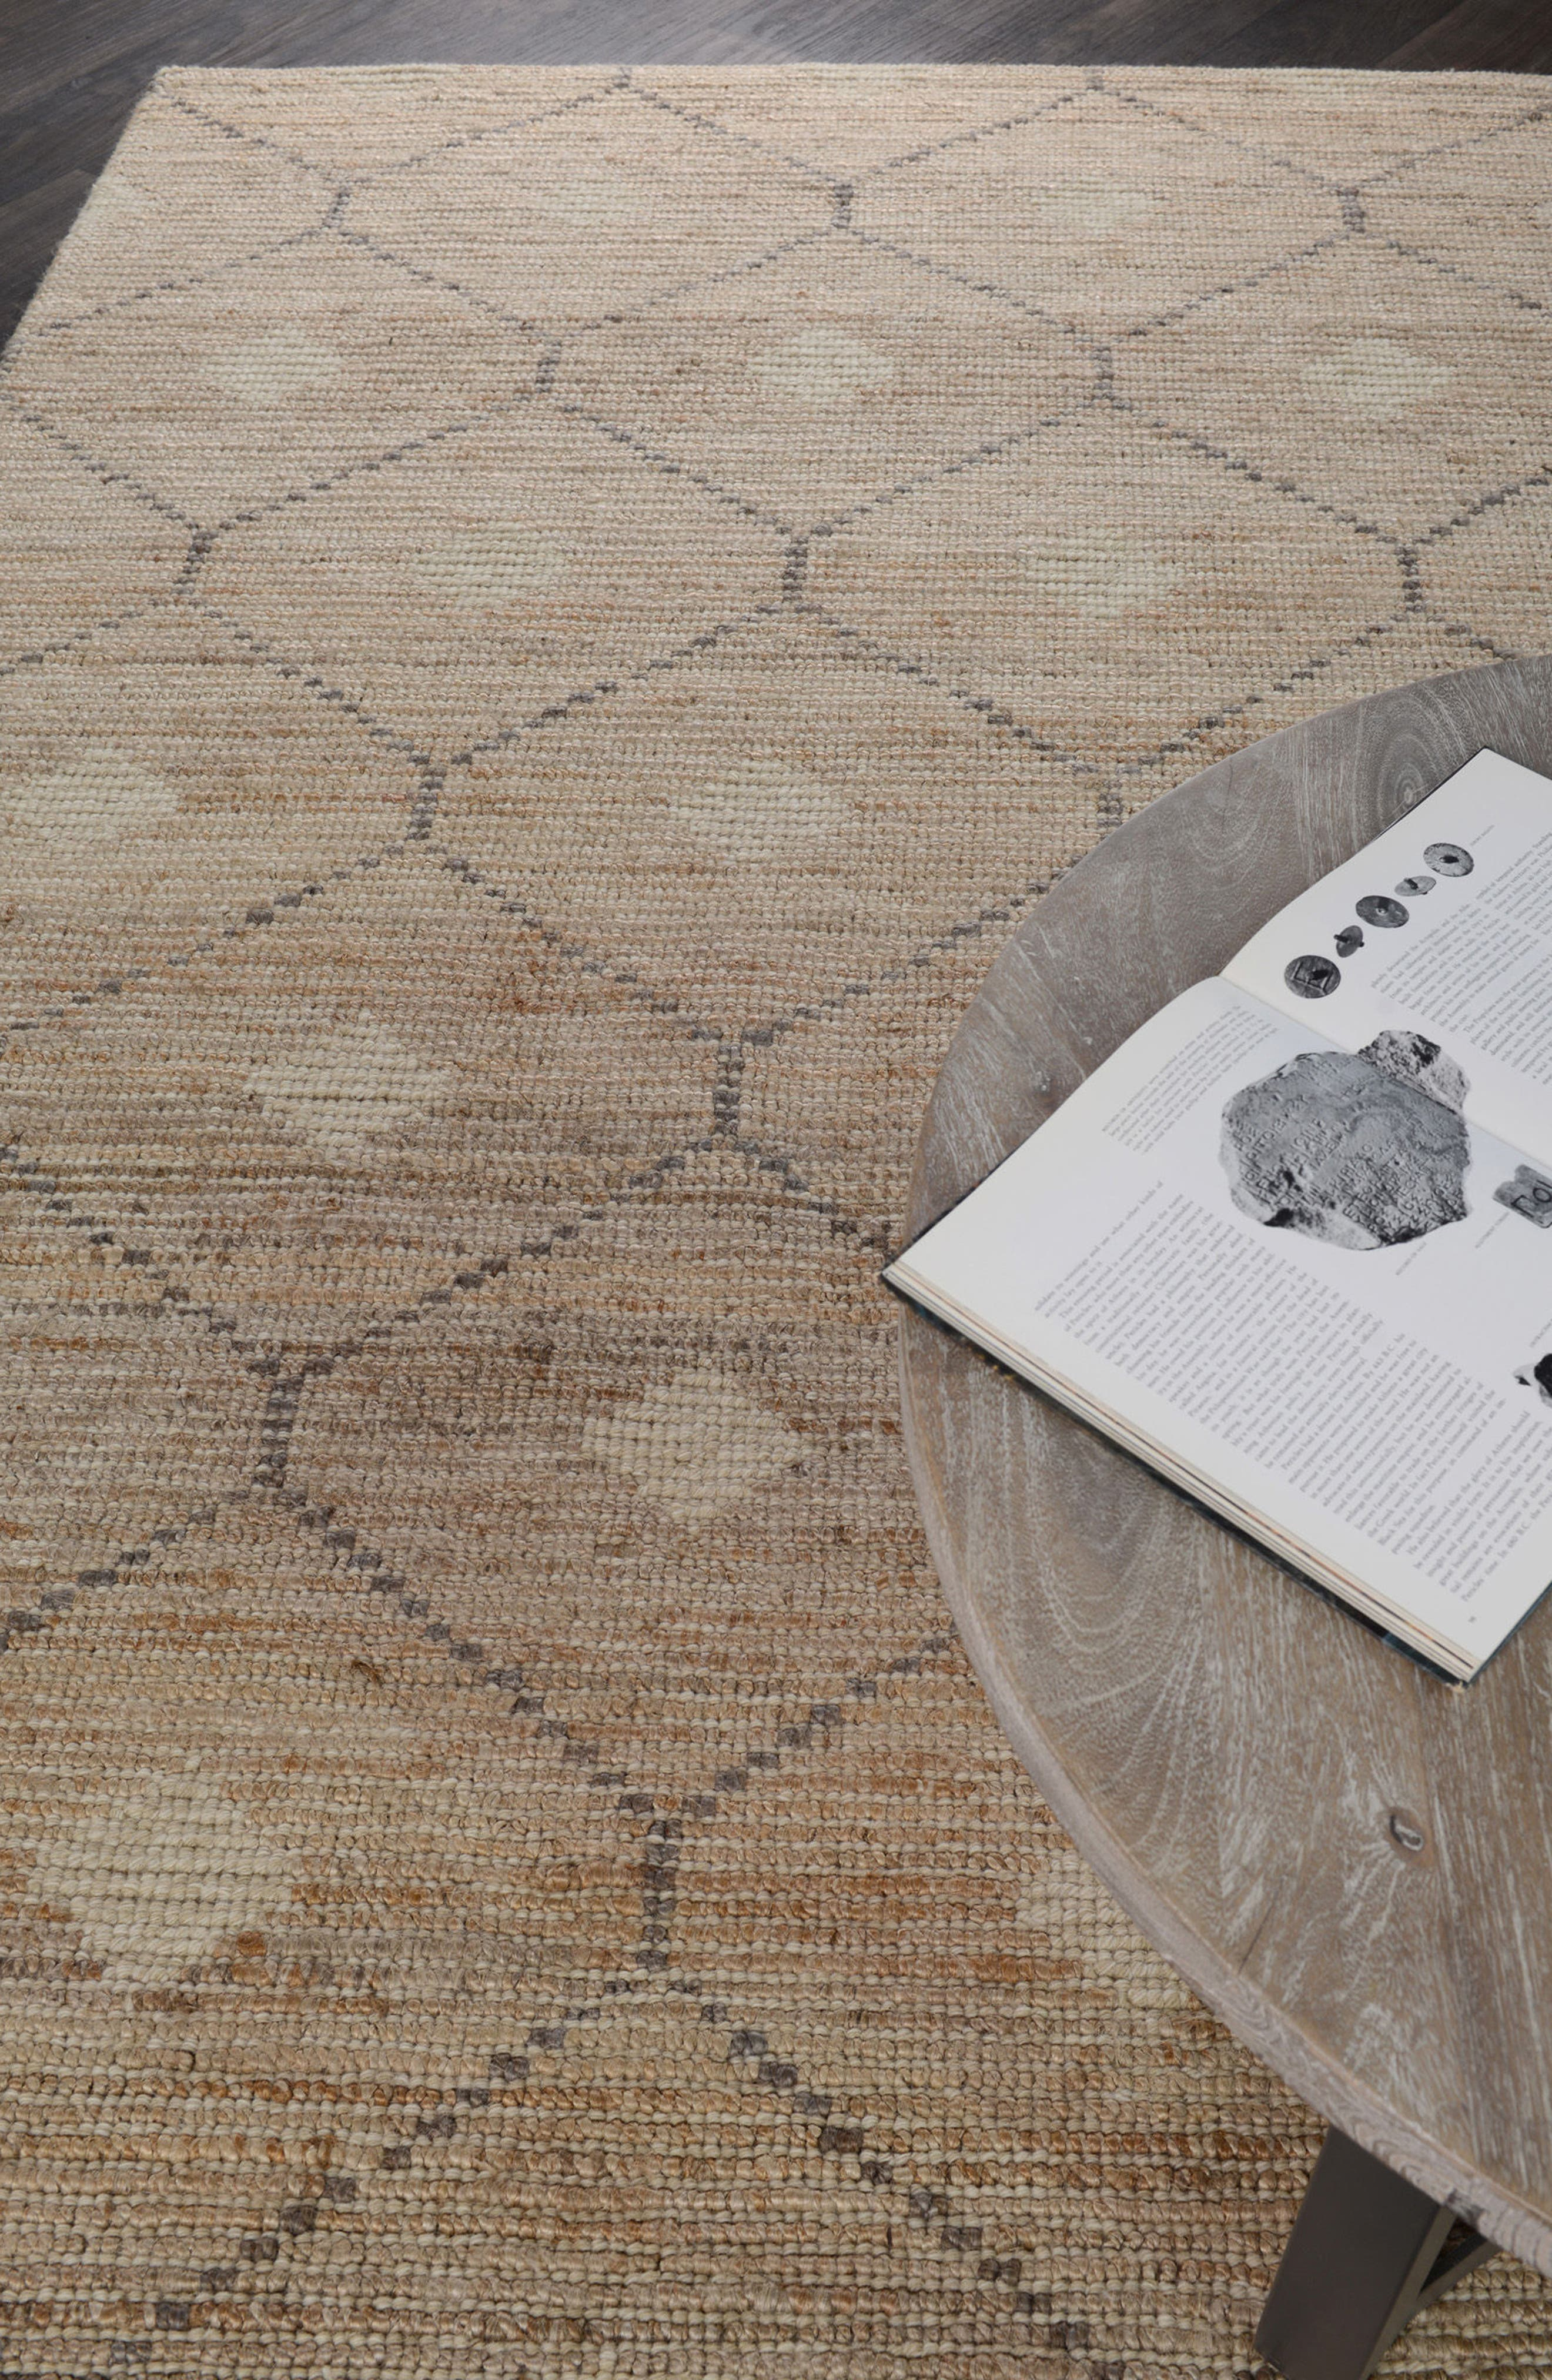 Rustica Handwoven Rug,                             Alternate thumbnail 3, color,                             250